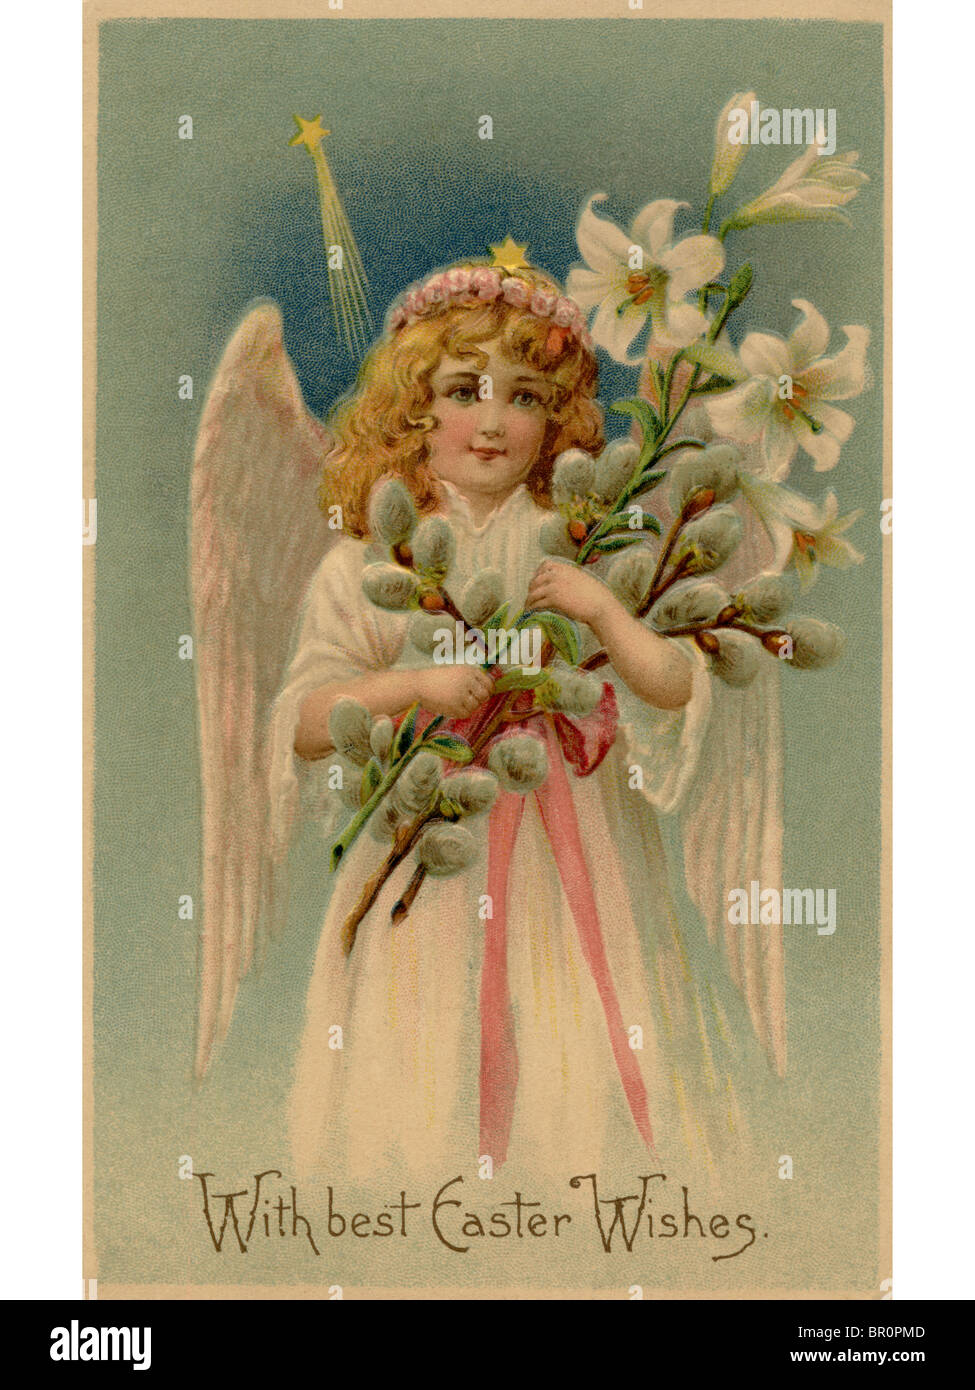 A vintage Easter postcard of an angel holding lilies - Stock Image